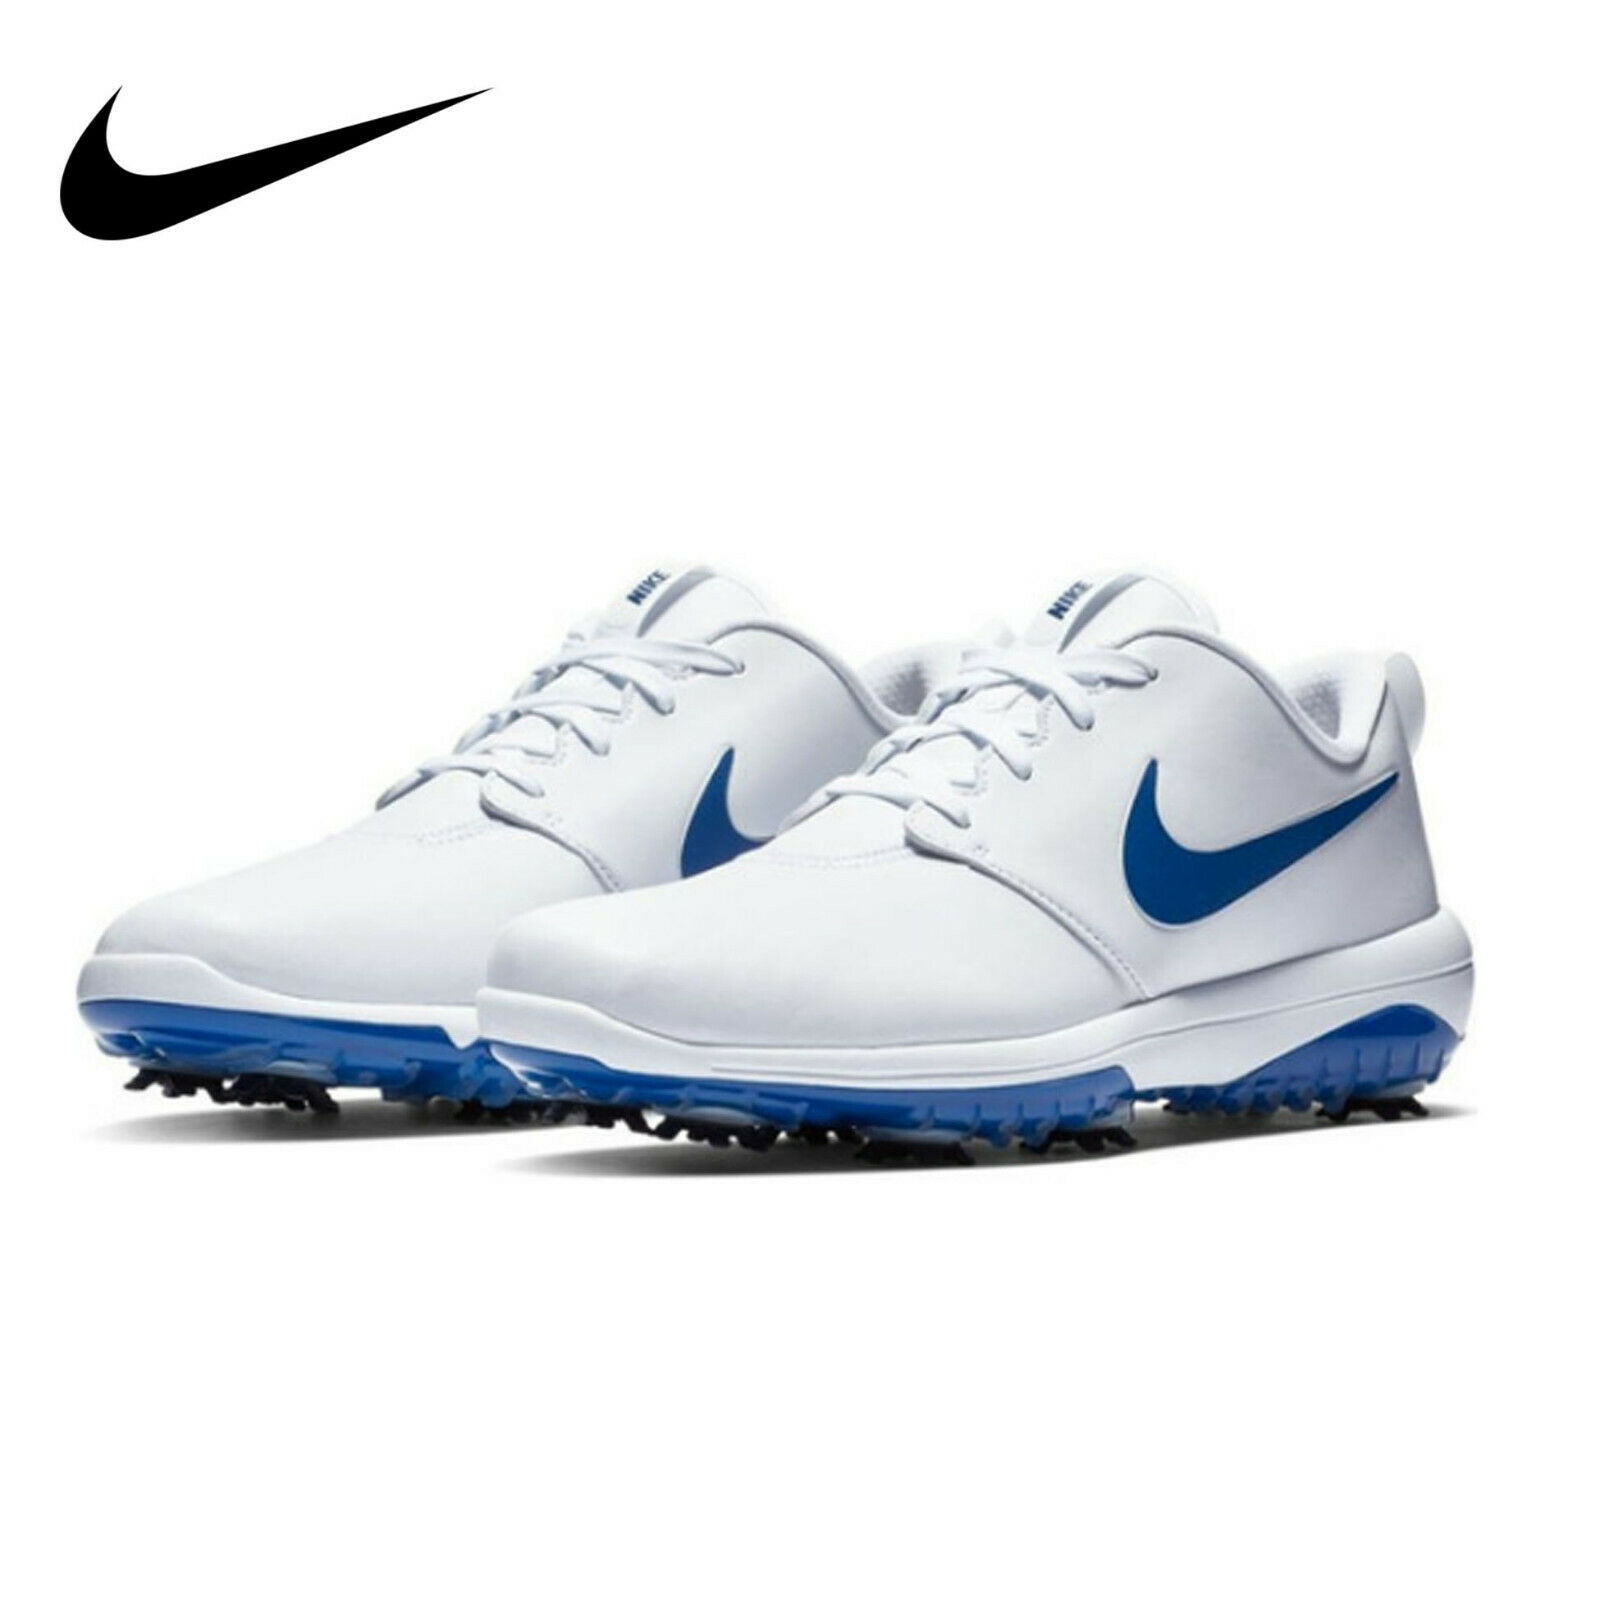 Nike Roshe G Tour Golf Cleats Shoes